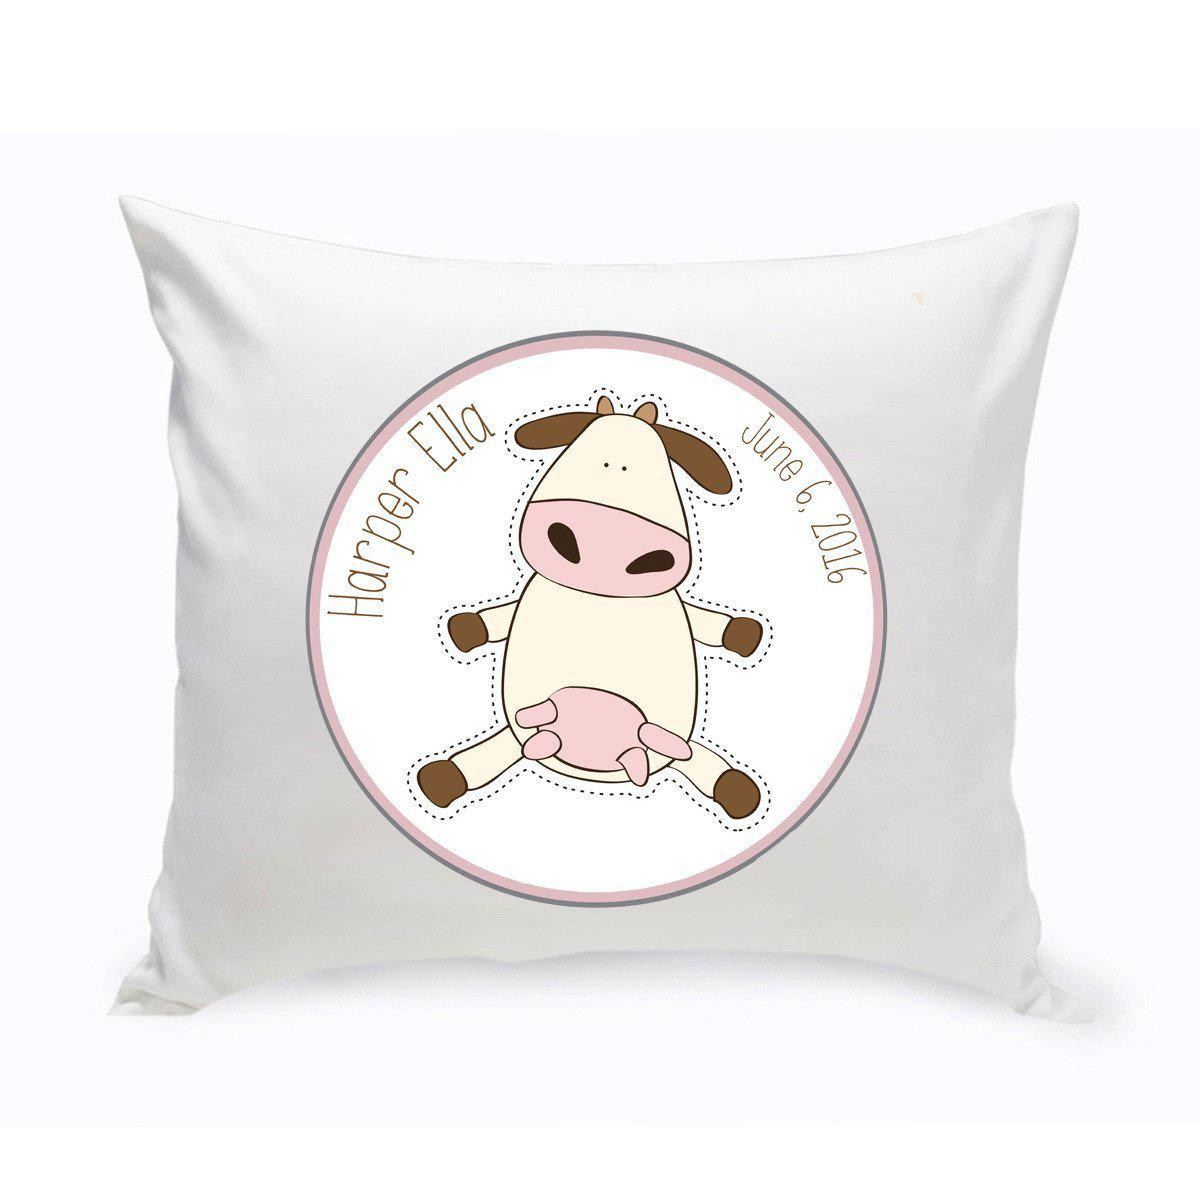 Personalized Baby Nursery Throw Pillow - Fun Cow